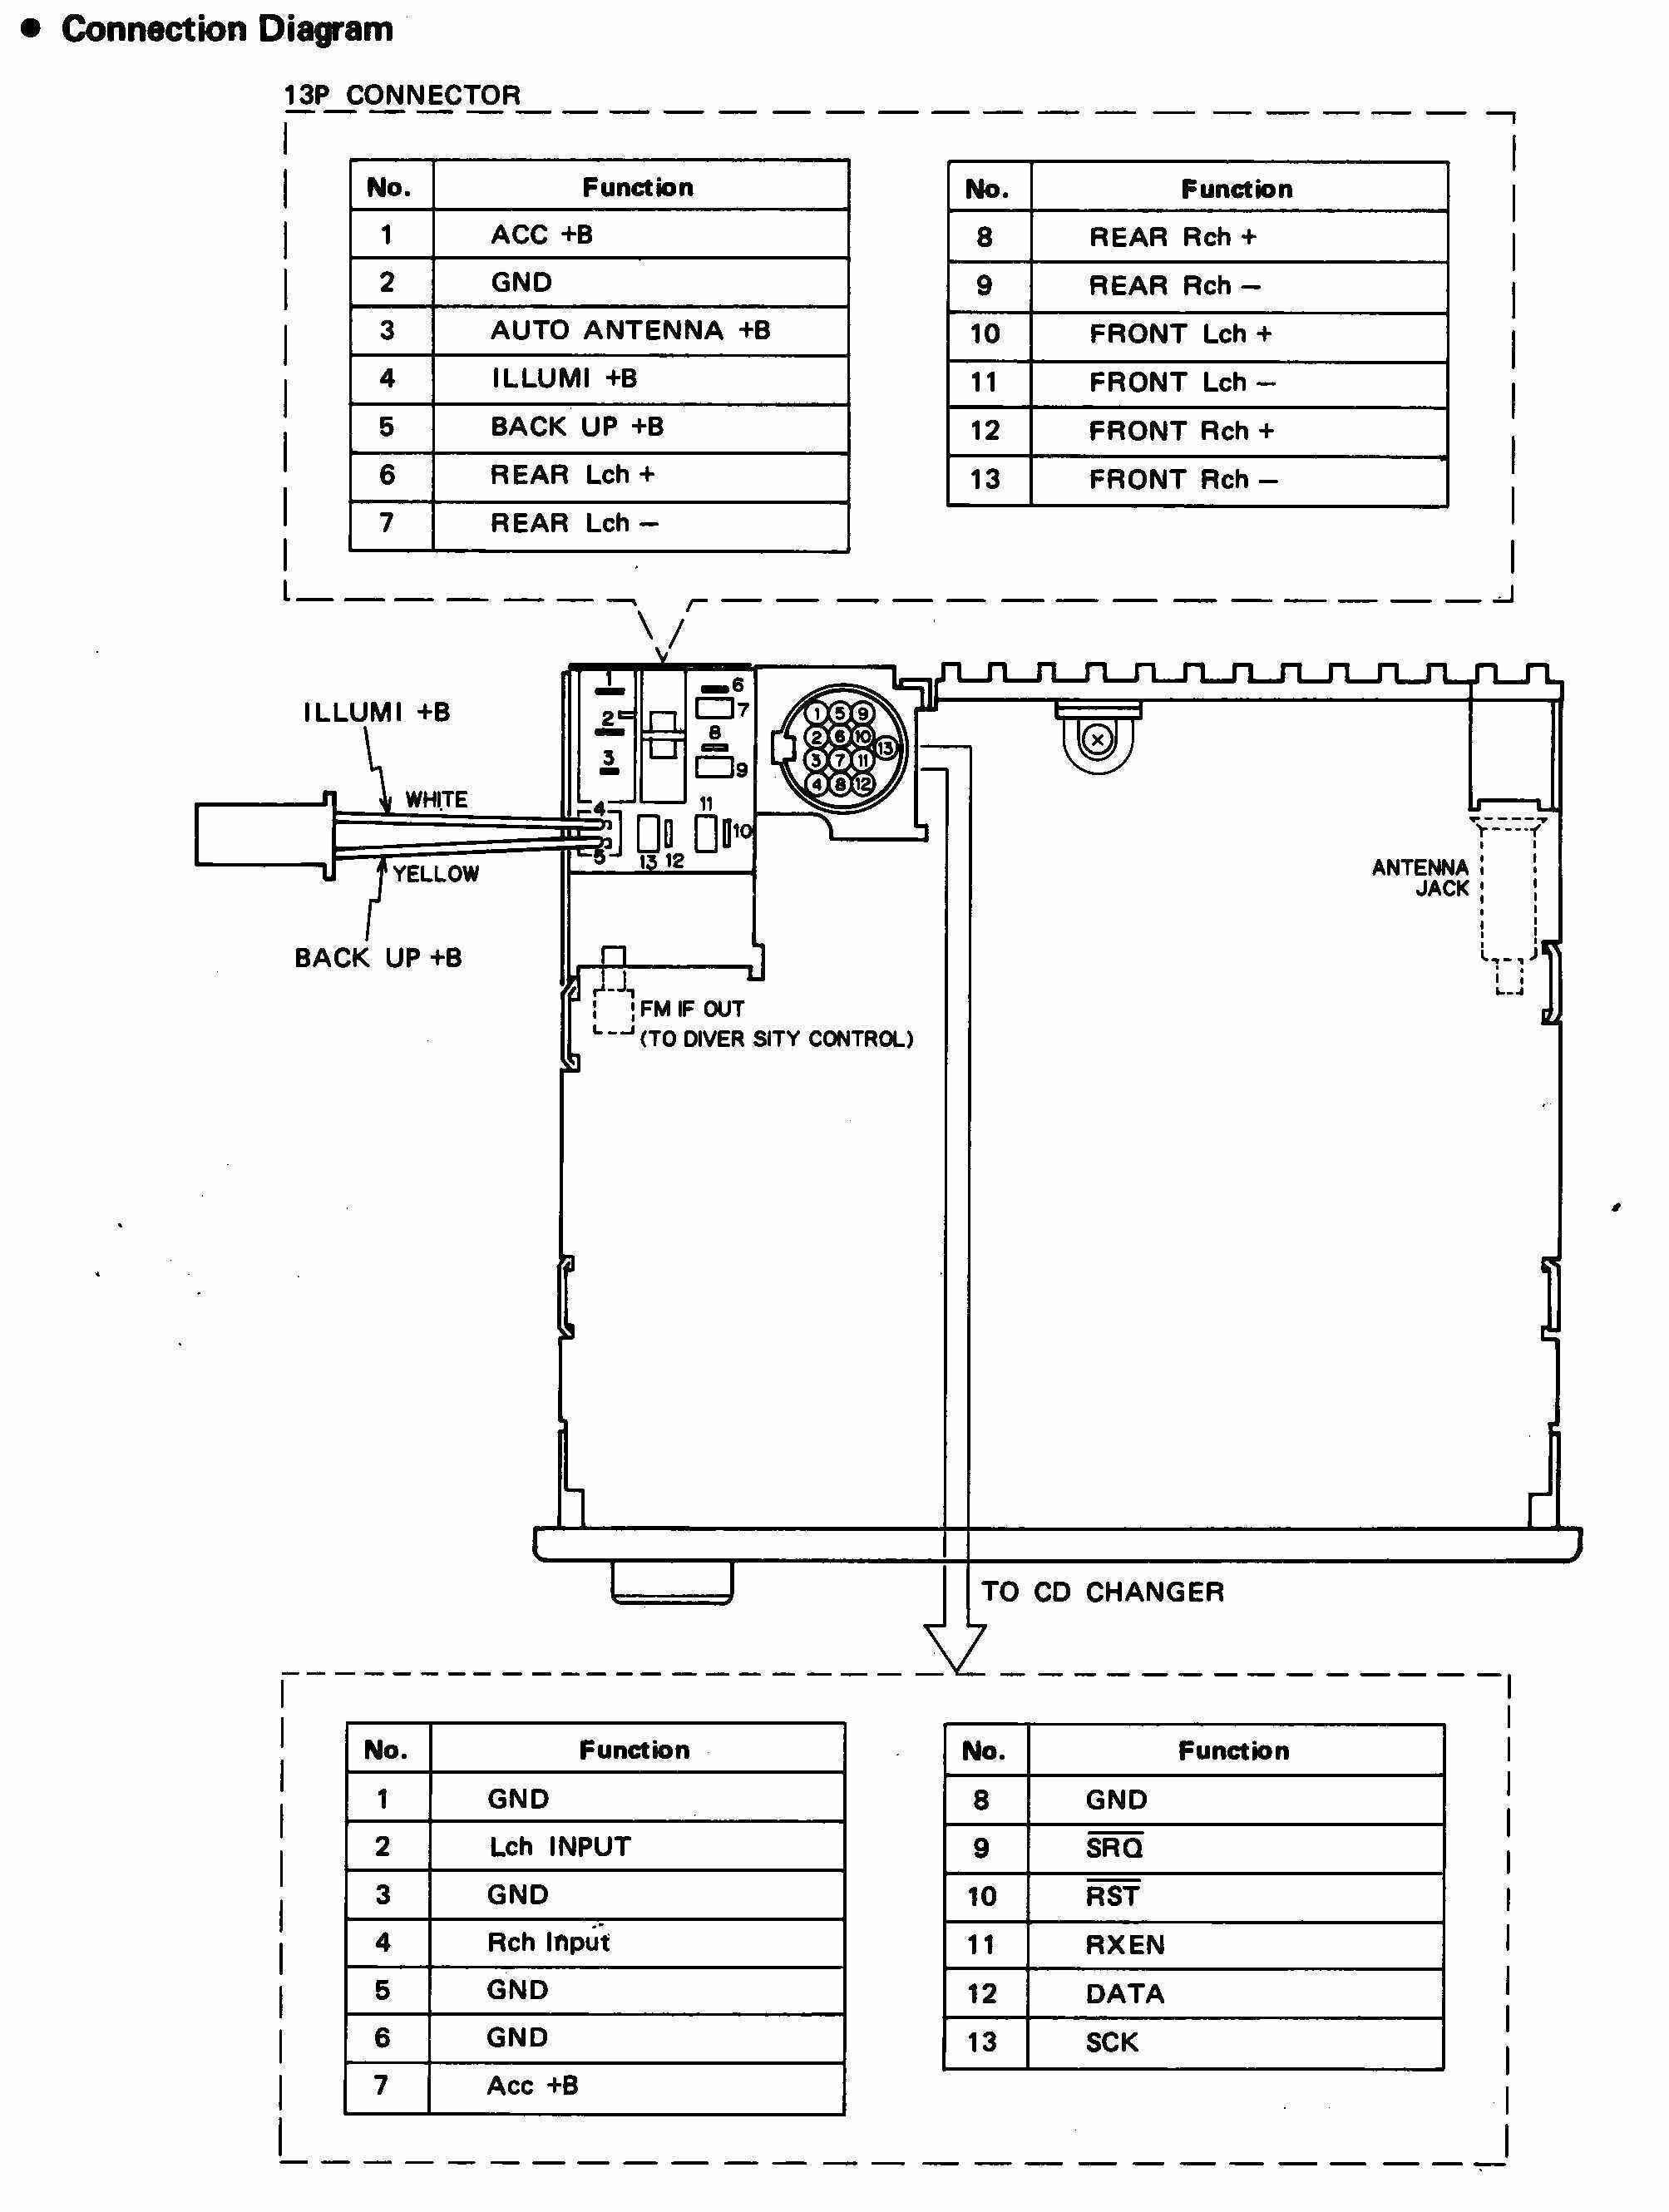 Wiring Diagrams for Pioneer Car Stereos Car Stereo Wiring Diagram Sufficient Snapshoot Diagrams for sony Of Wiring Diagrams for Pioneer Car Stereos